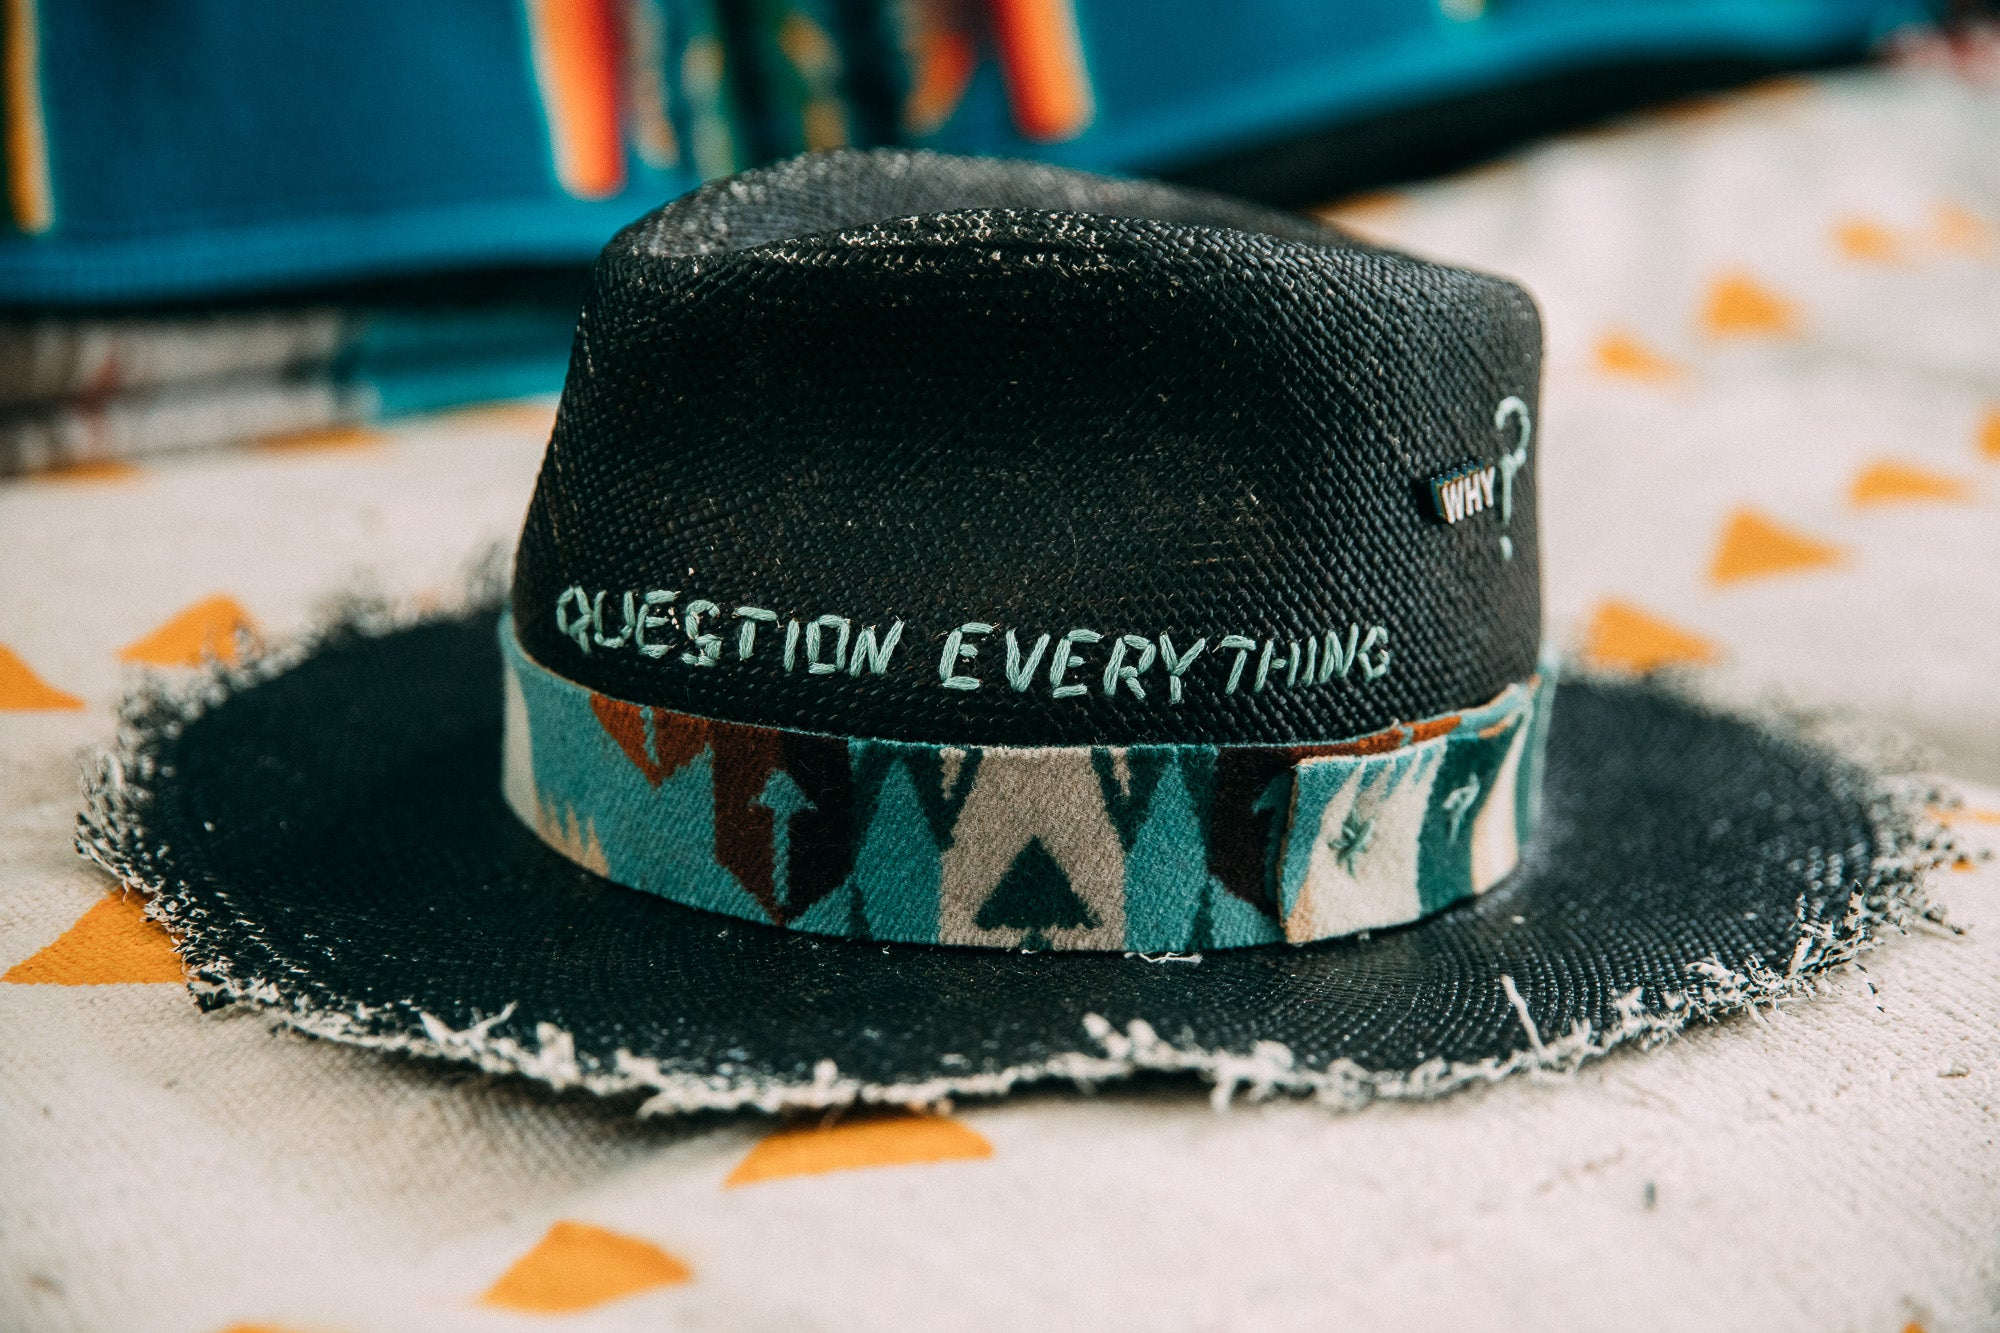 The Question Everything Hat